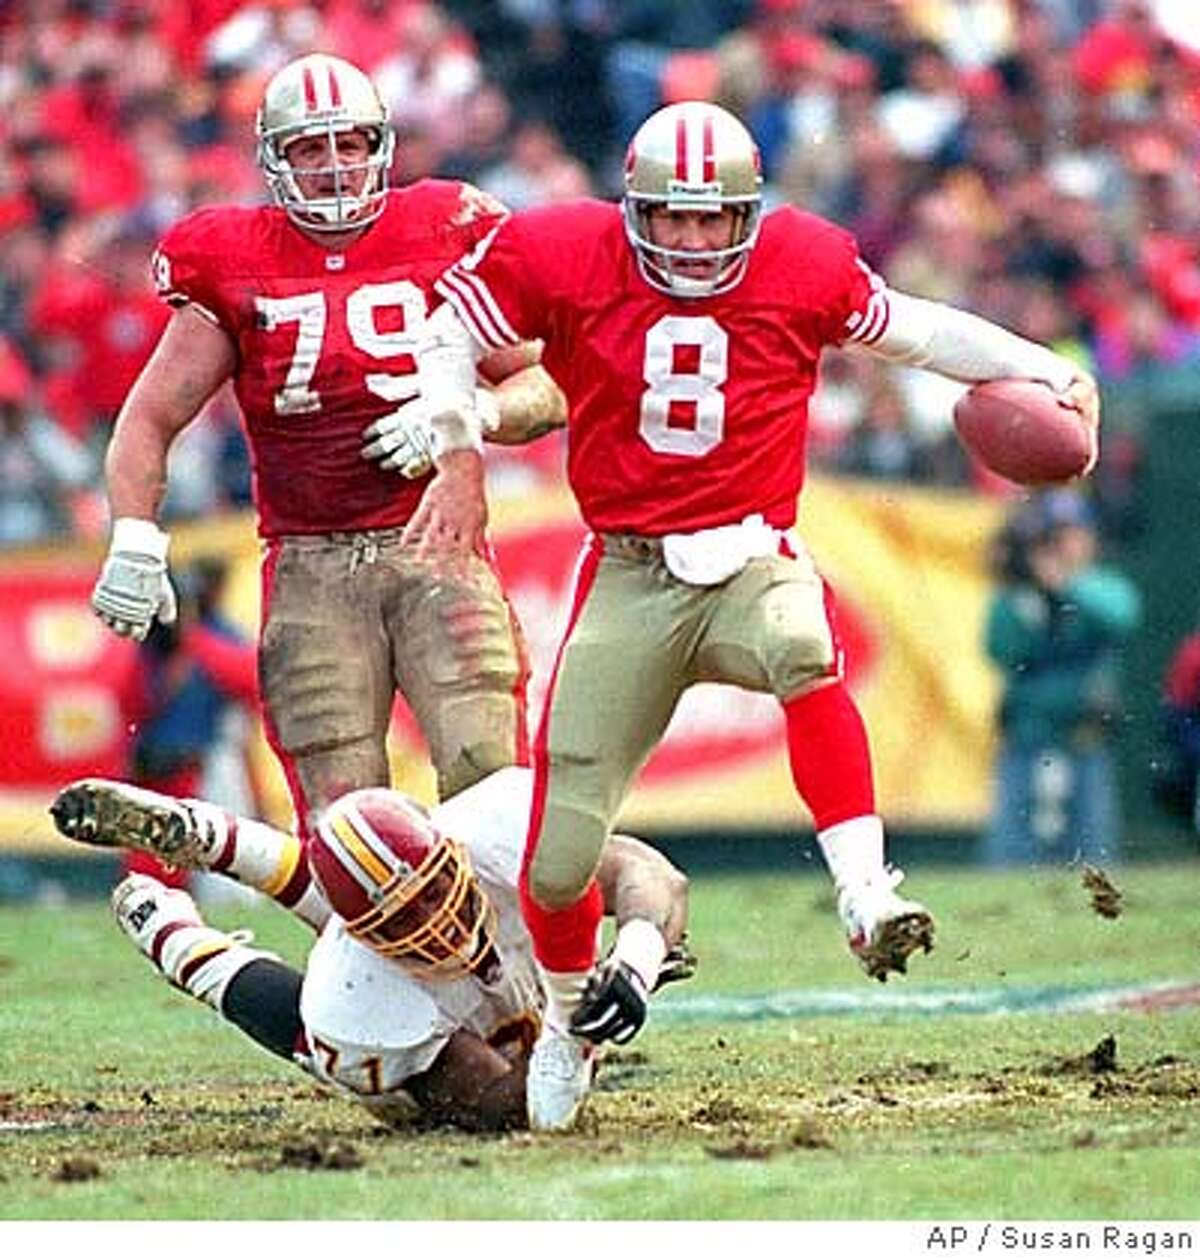 ** FILE ** San Francisco 49ers quarterback Steve Young (8) eludes Washington Redskins' Charles Mann to scramble for a first-half first down during NFC conference semifinal action at a rain-soaked Candlestick Park in San Francisco, in this Jan. 9, 1993 photo. 49ers' Harris Barton (79) is at rear left. (AP Photo/Susan Ragan)